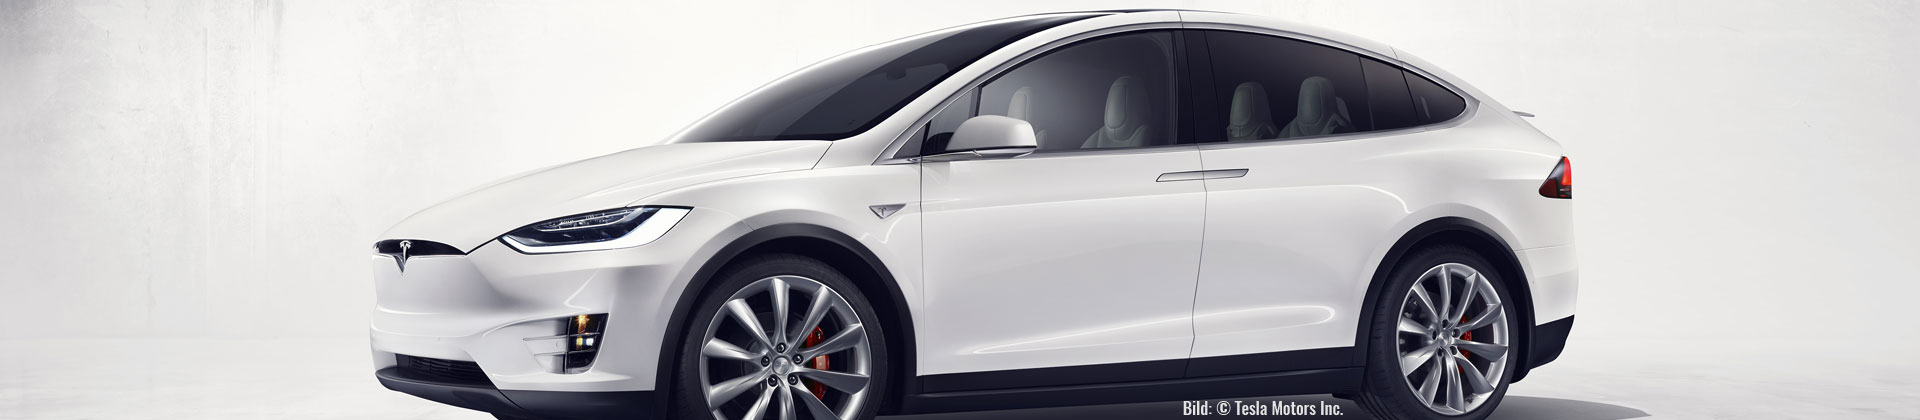 Tesla Model X (Bild: © Tesla Motors Inc.)